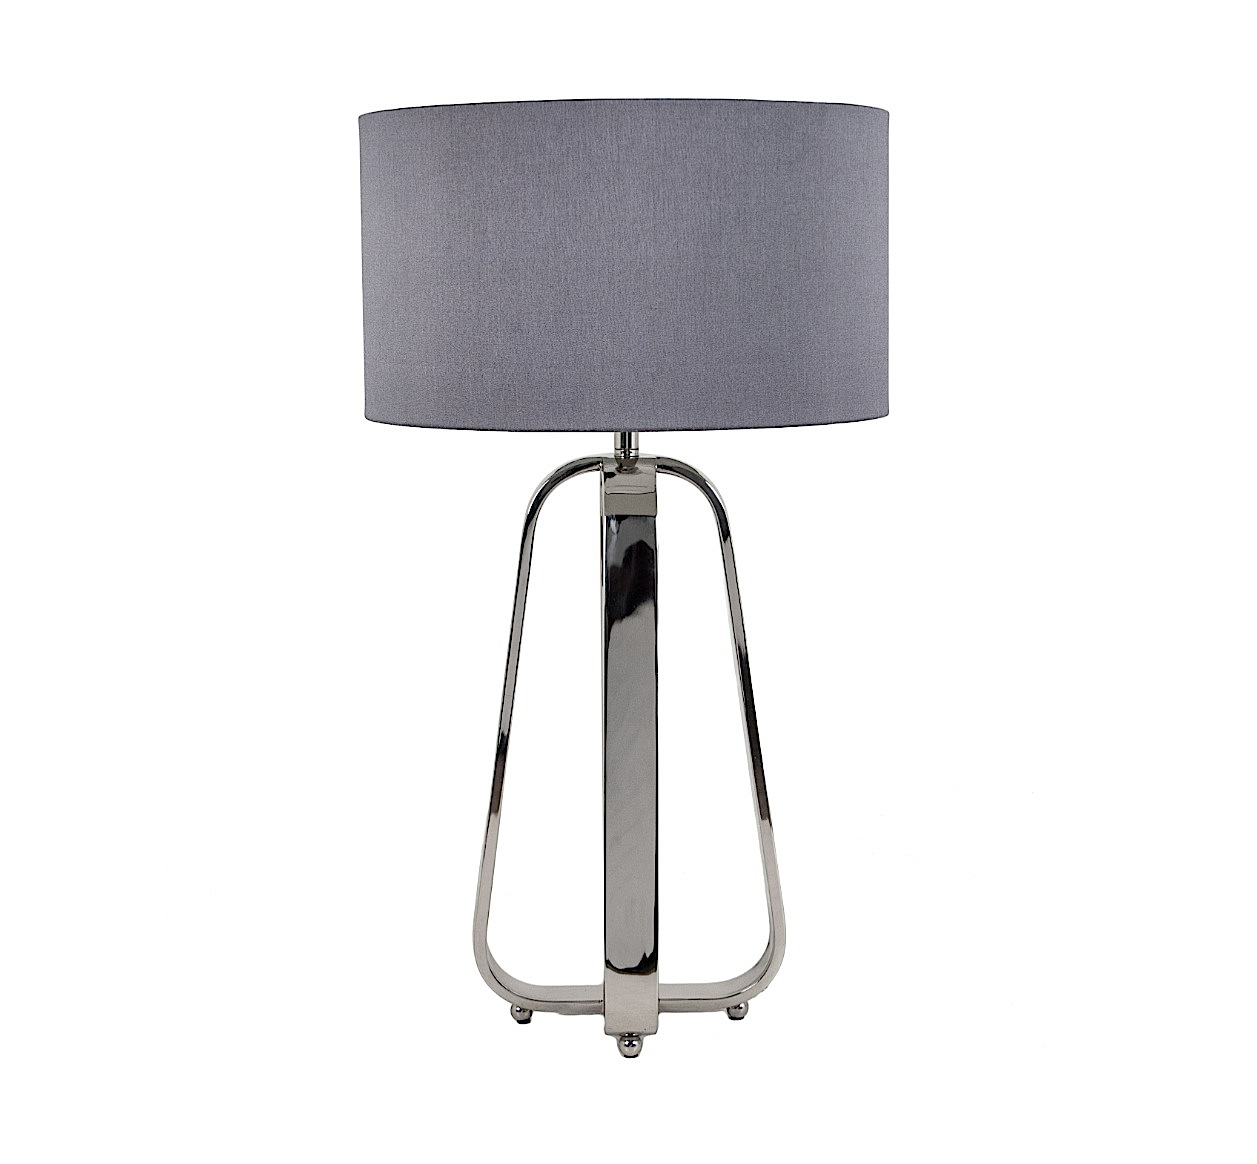 FONTANA TABLE LAMP WITH SHADE -0